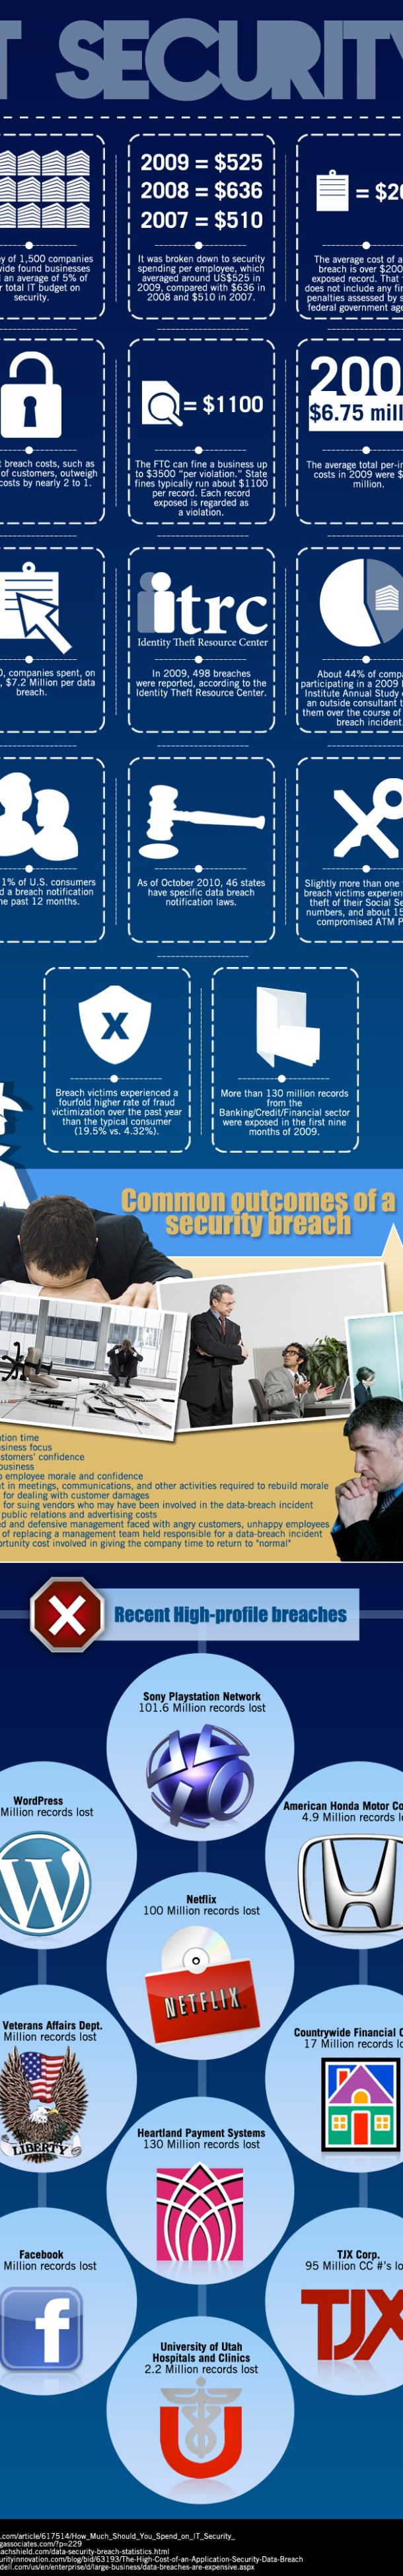 IT Security Infographic